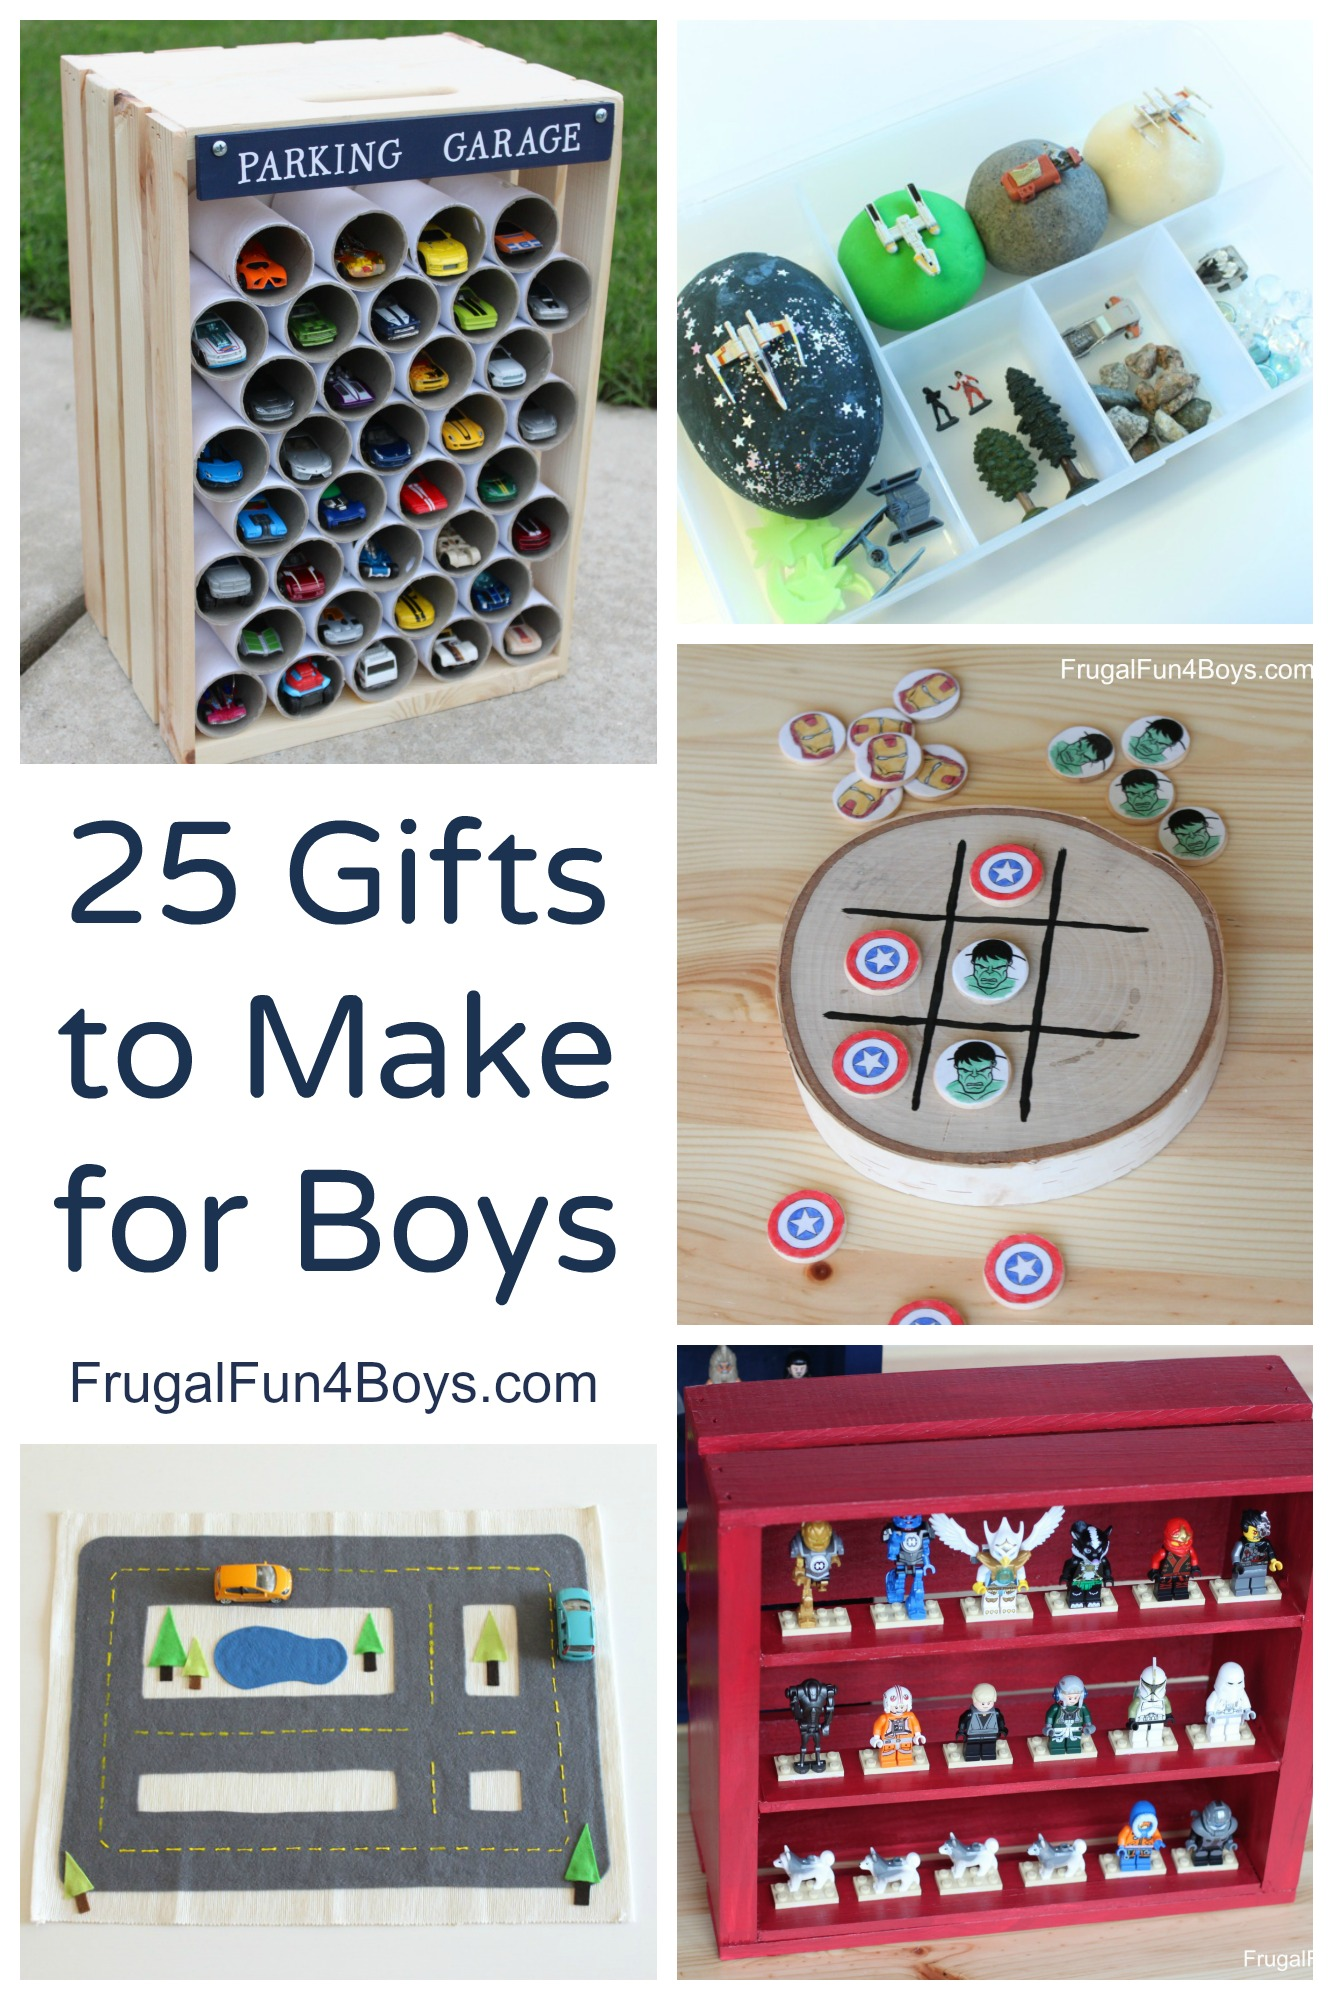 25 more homemade gifts to make for boys 25 gifts to make for boys homemade toys that boys will go for solutioingenieria Gallery